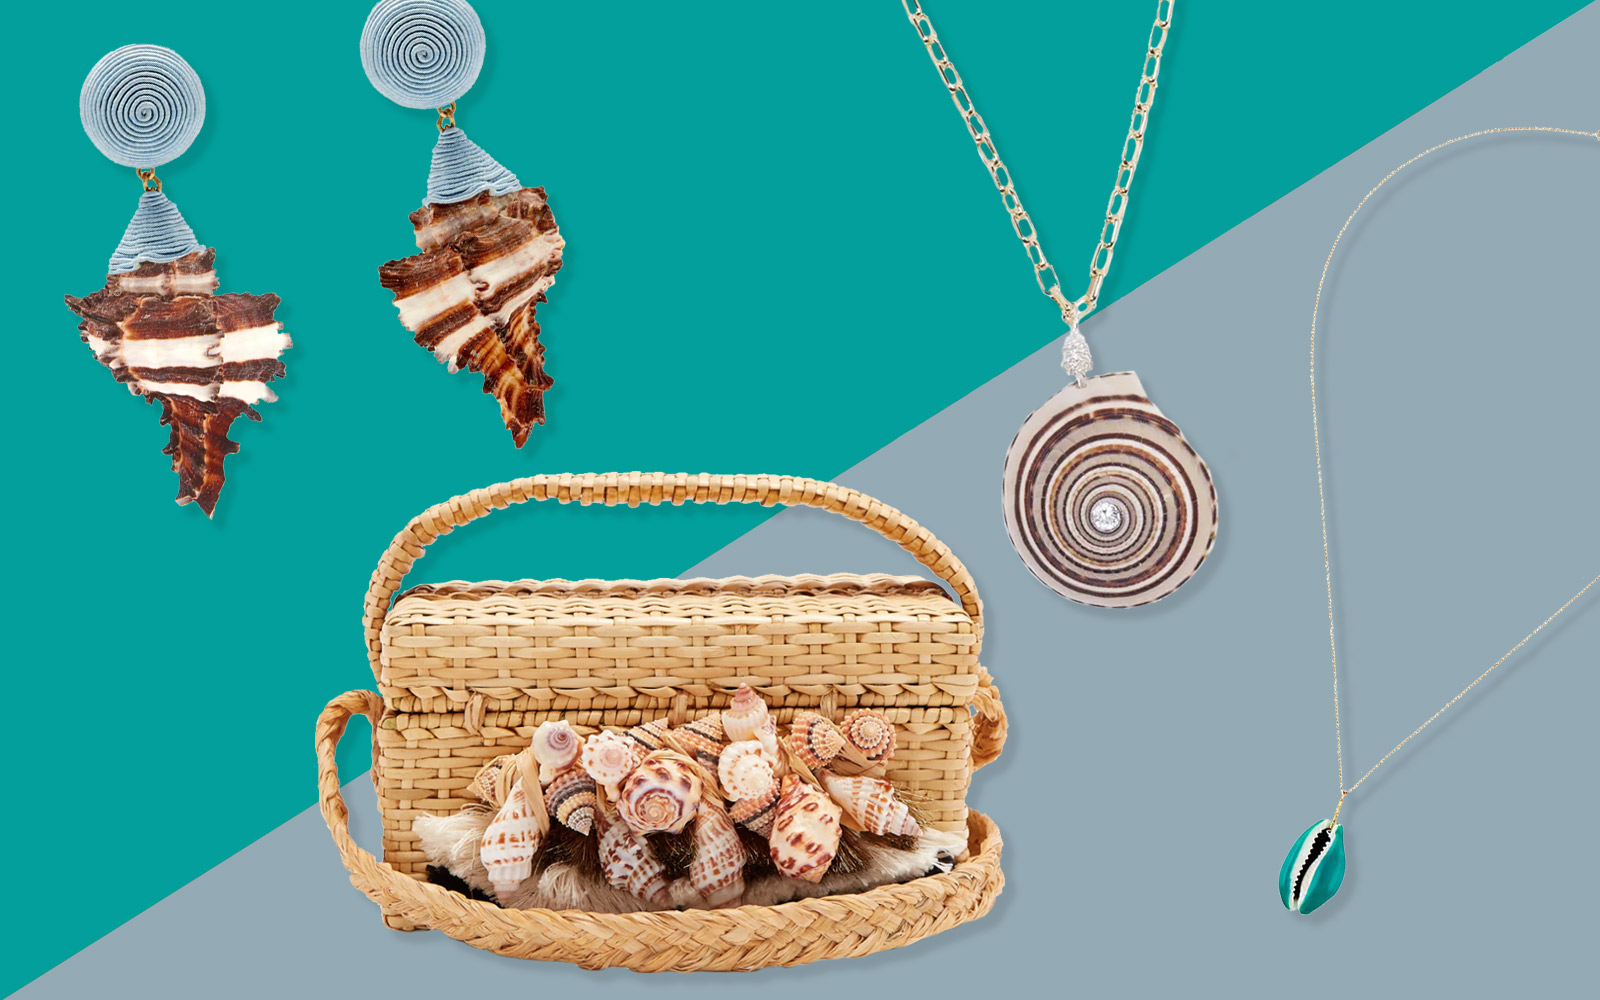 The Best Modern Seashell Jewelry and Accessories